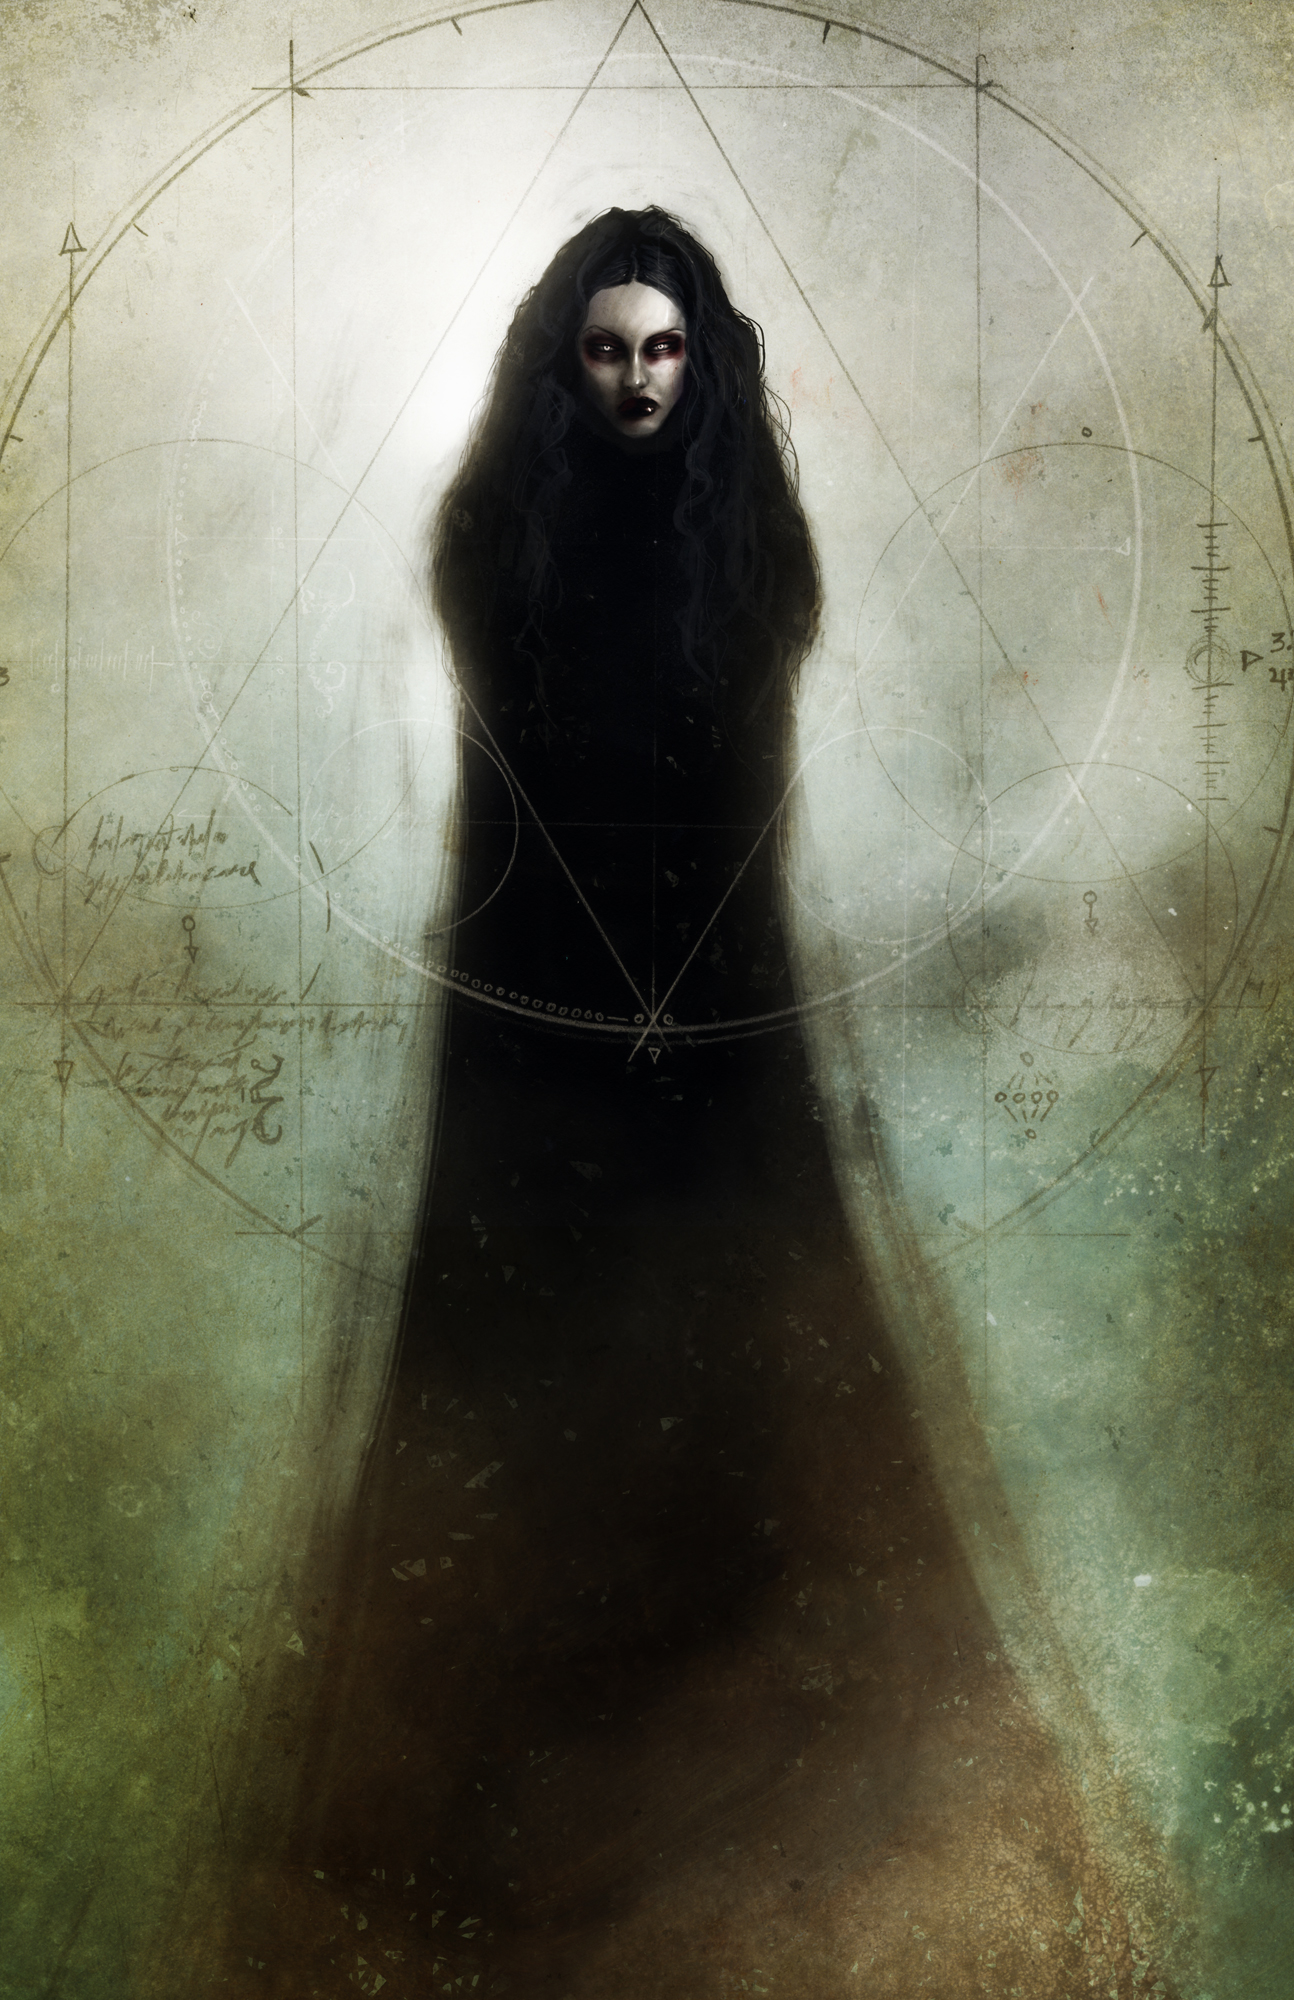 April 6th 2012 by menton3